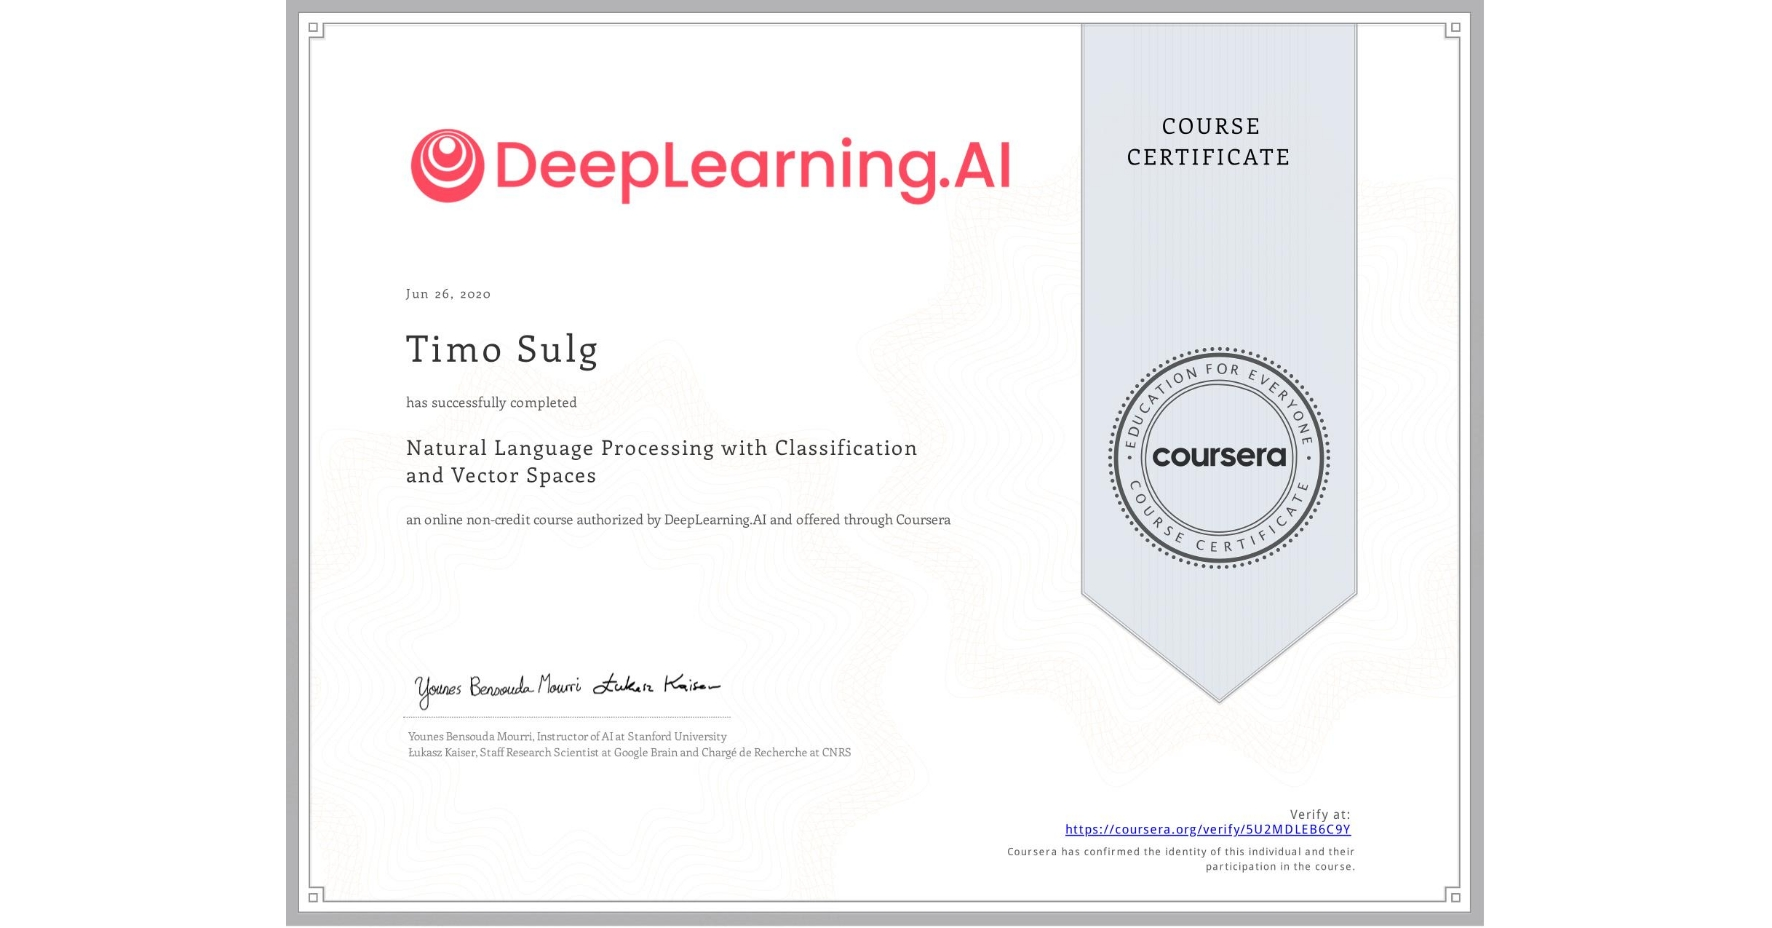 View certificate for Timo Sulg, Natural Language Processing with Classification and Vector Spaces, an online non-credit course authorized by DeepLearning.AI and offered through Coursera